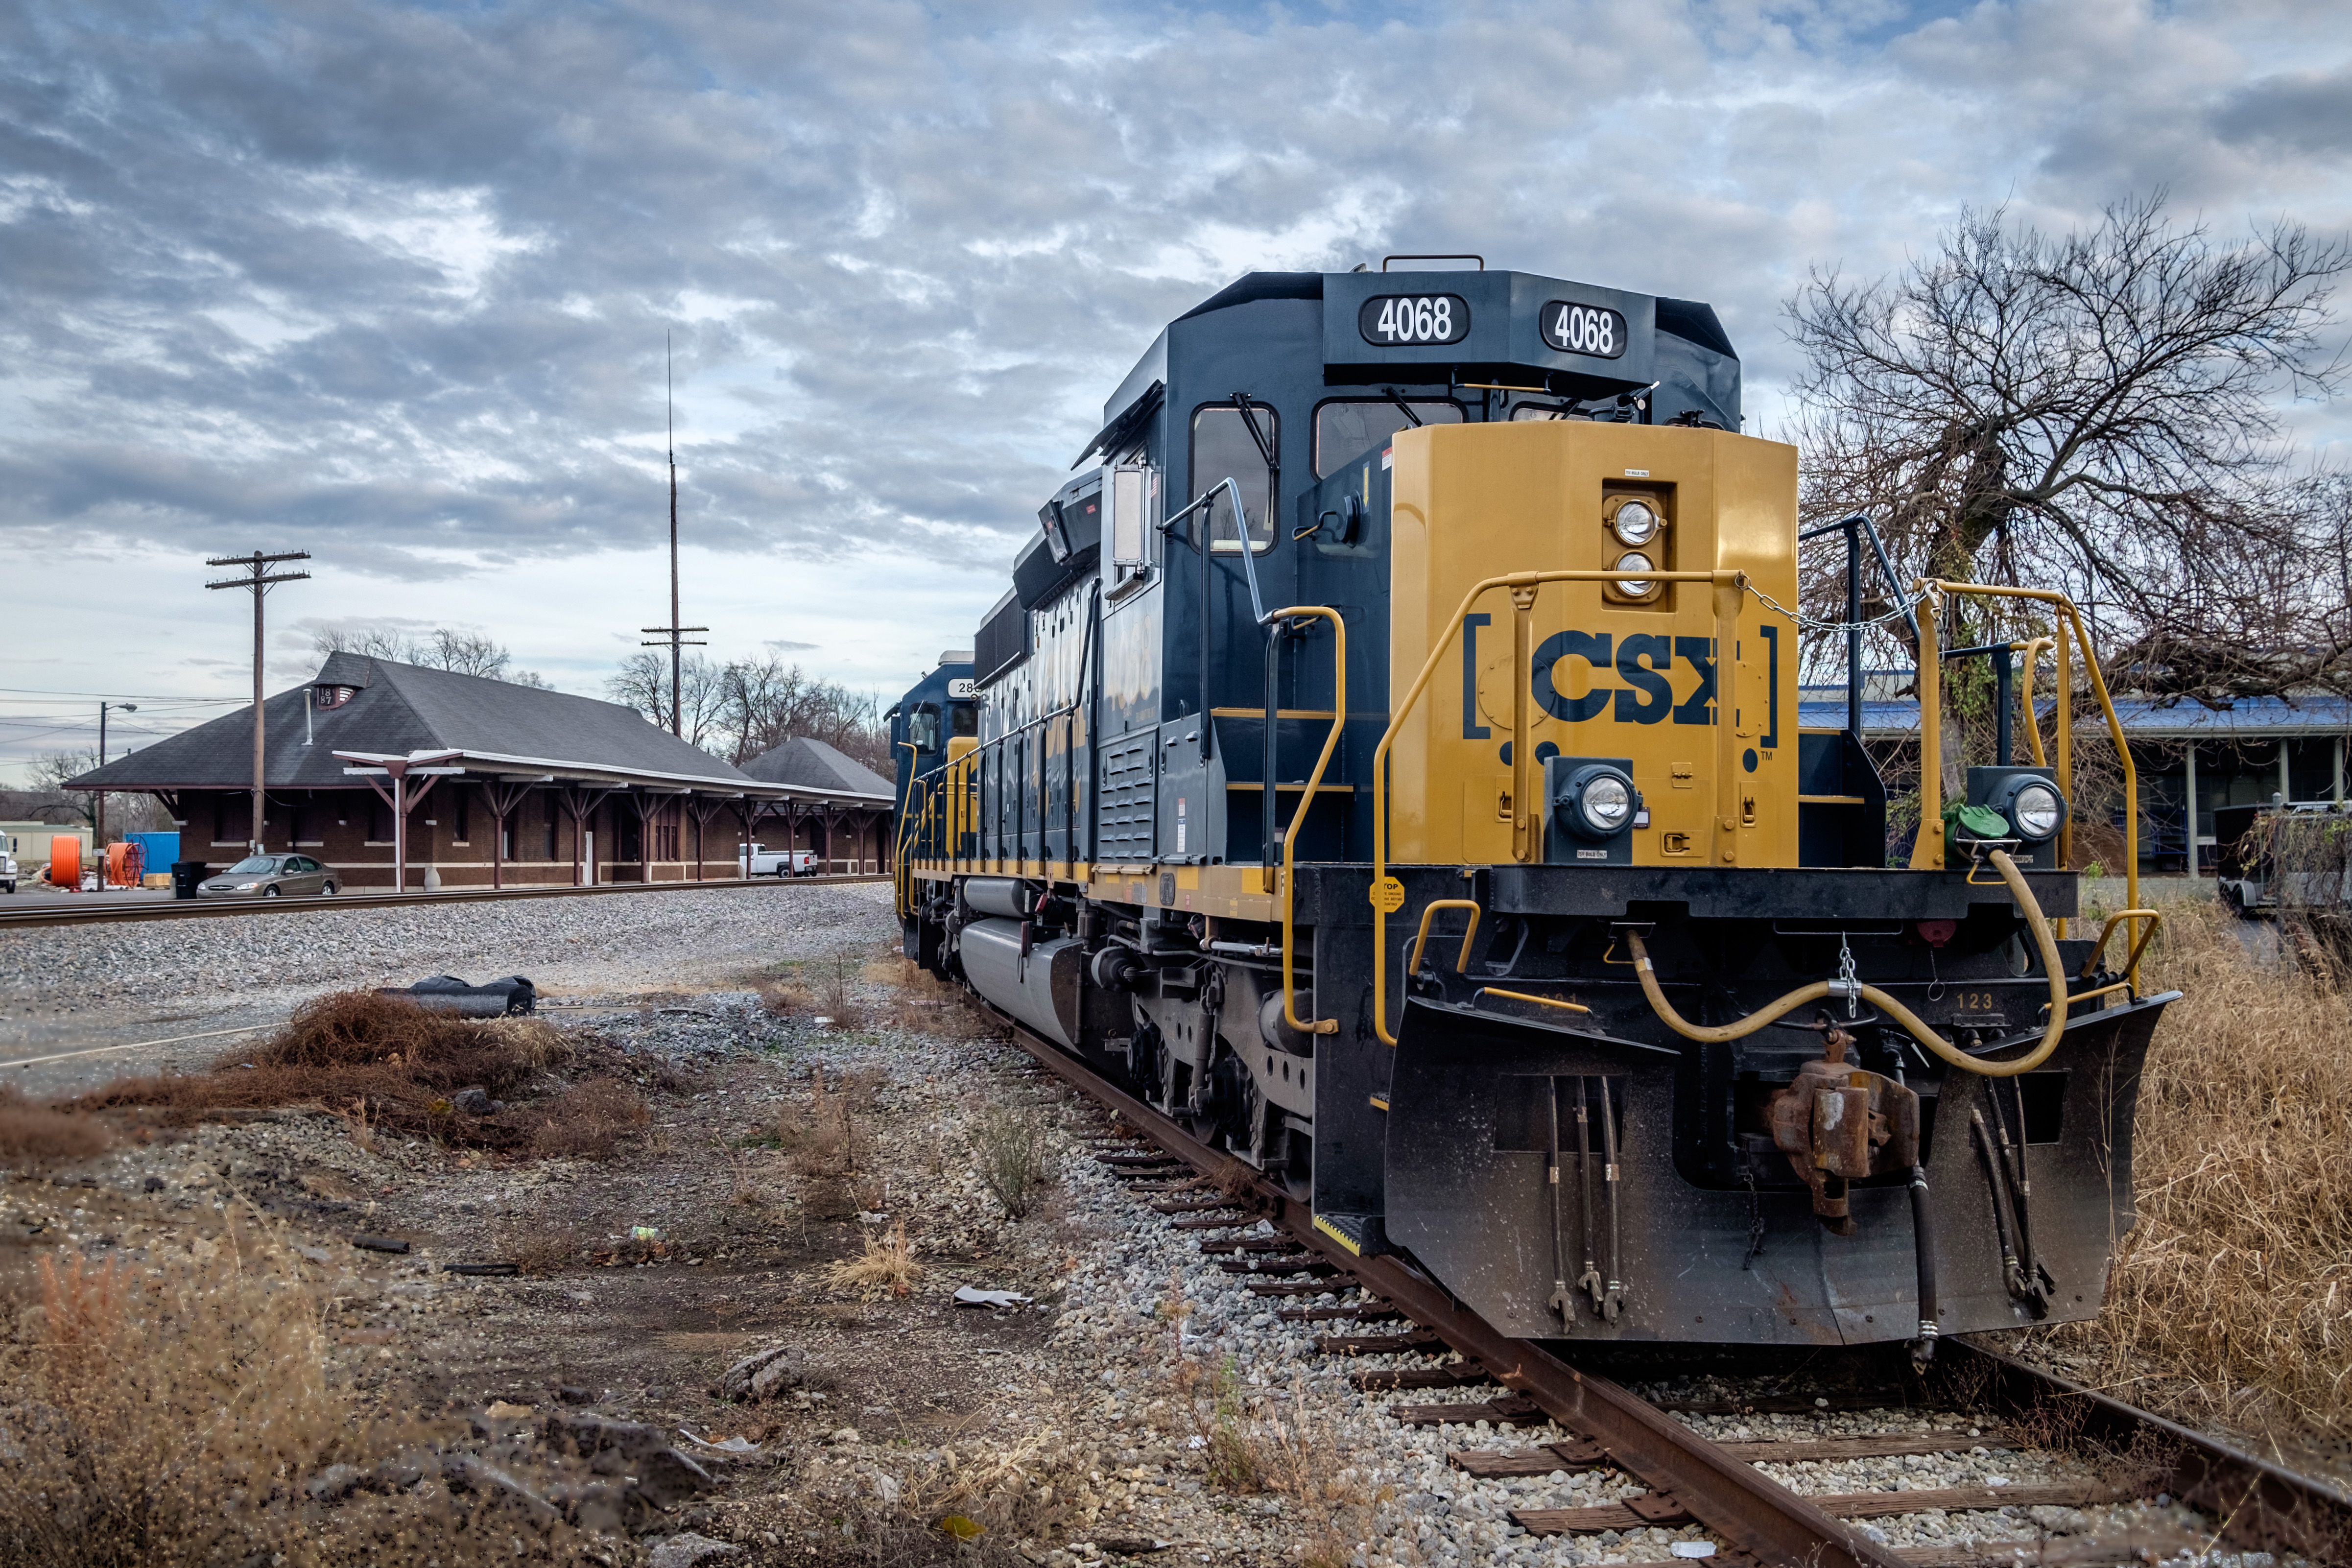 Tennessee rutherford county lascassas - Csx Depot Murfreesboro Tn Tennessee Rutherford County Sd403